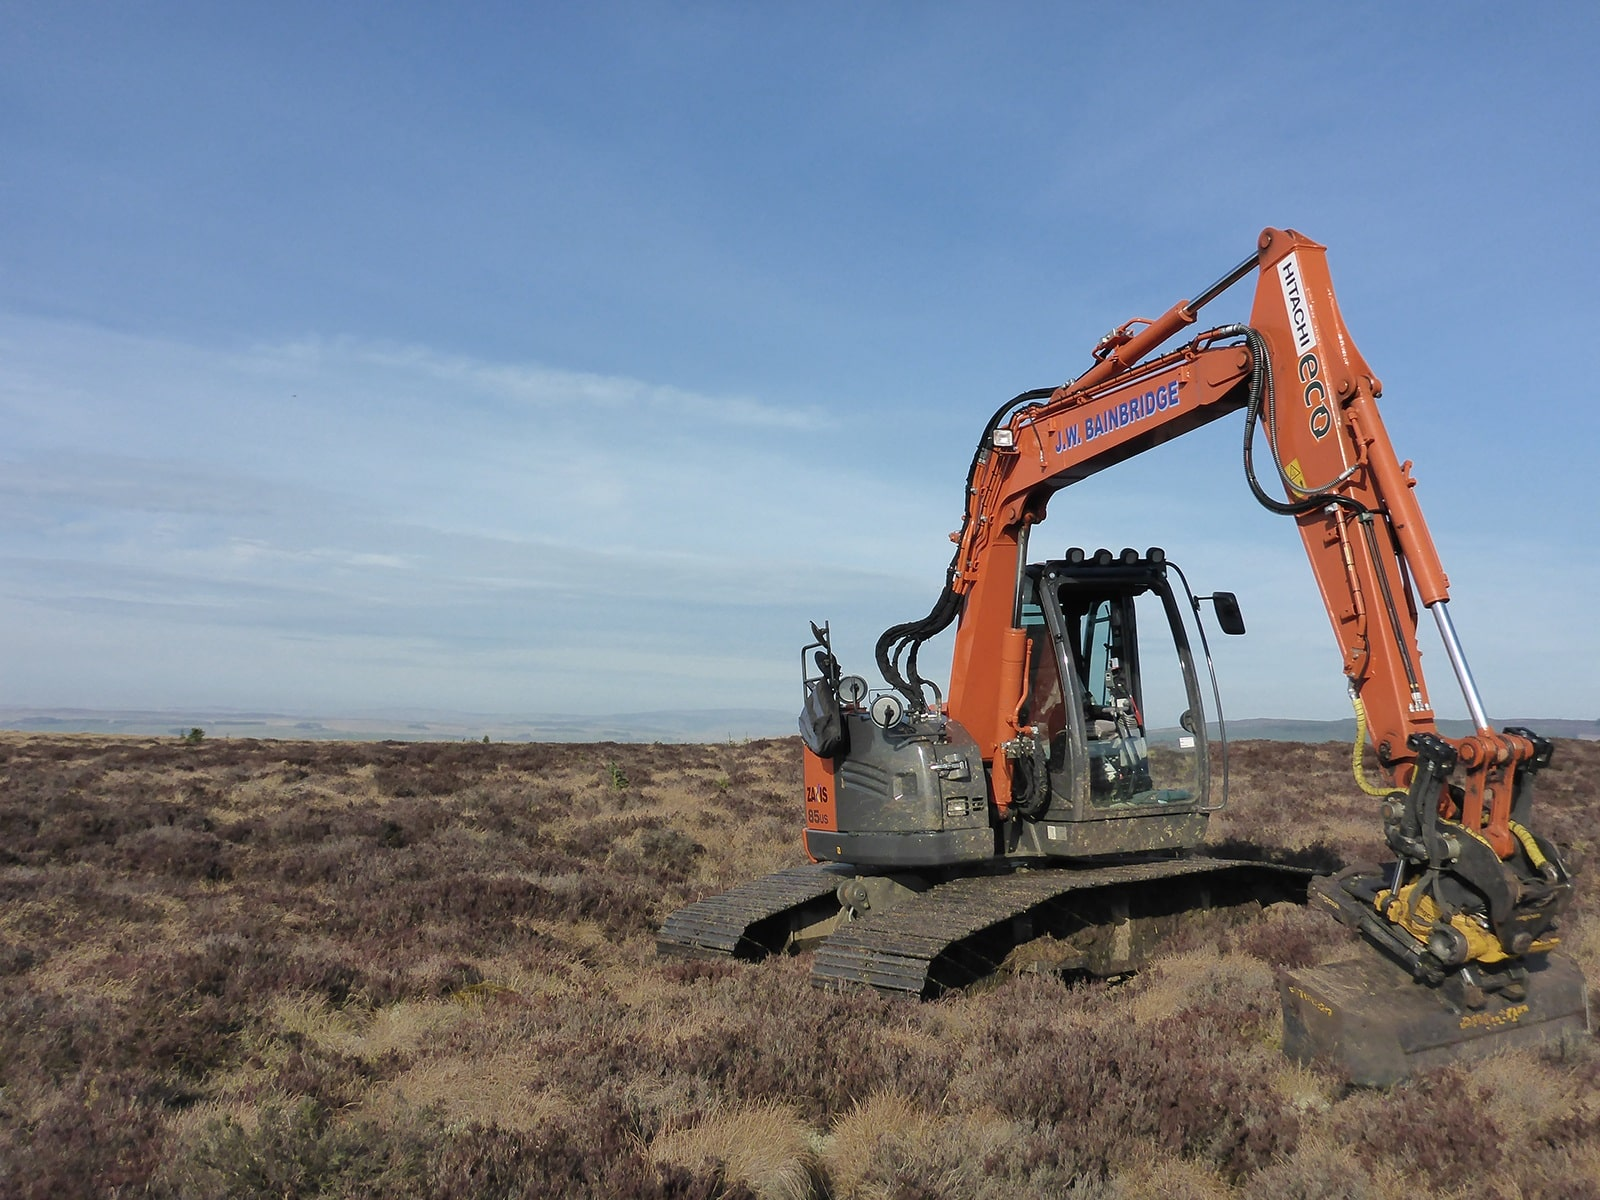 digger on steng moss and cheviot on the horizon